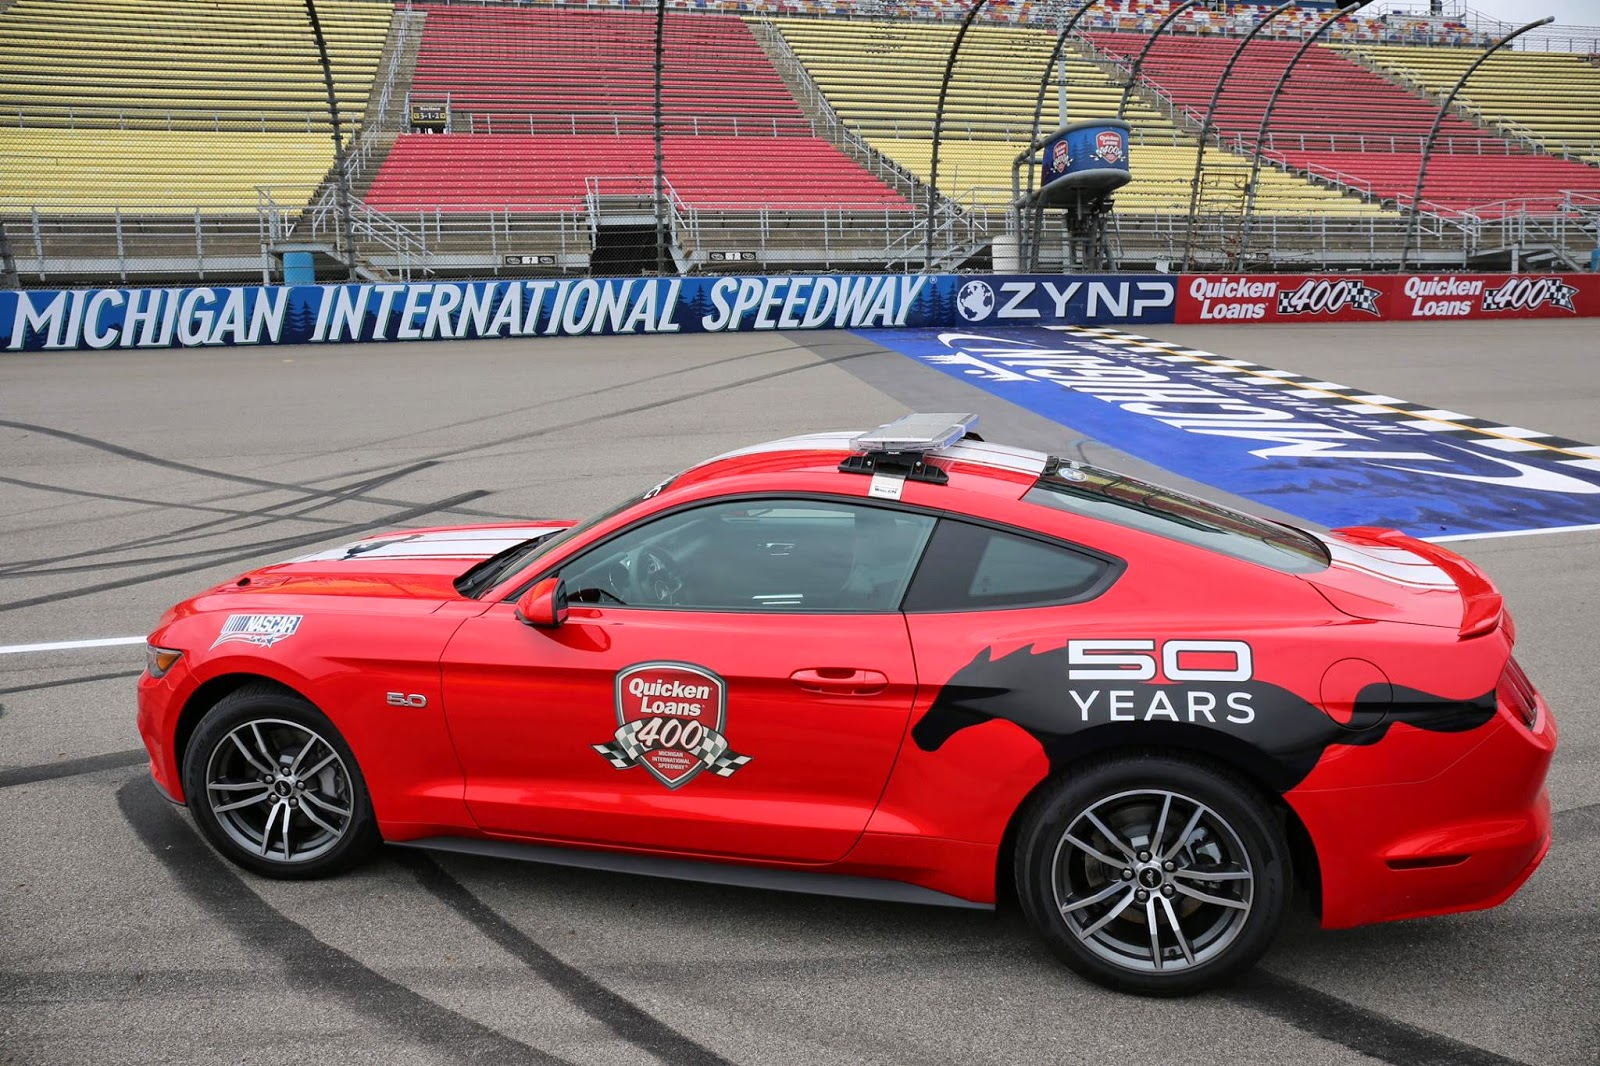 Mustang Celebration Continues at Michigan International Speedway